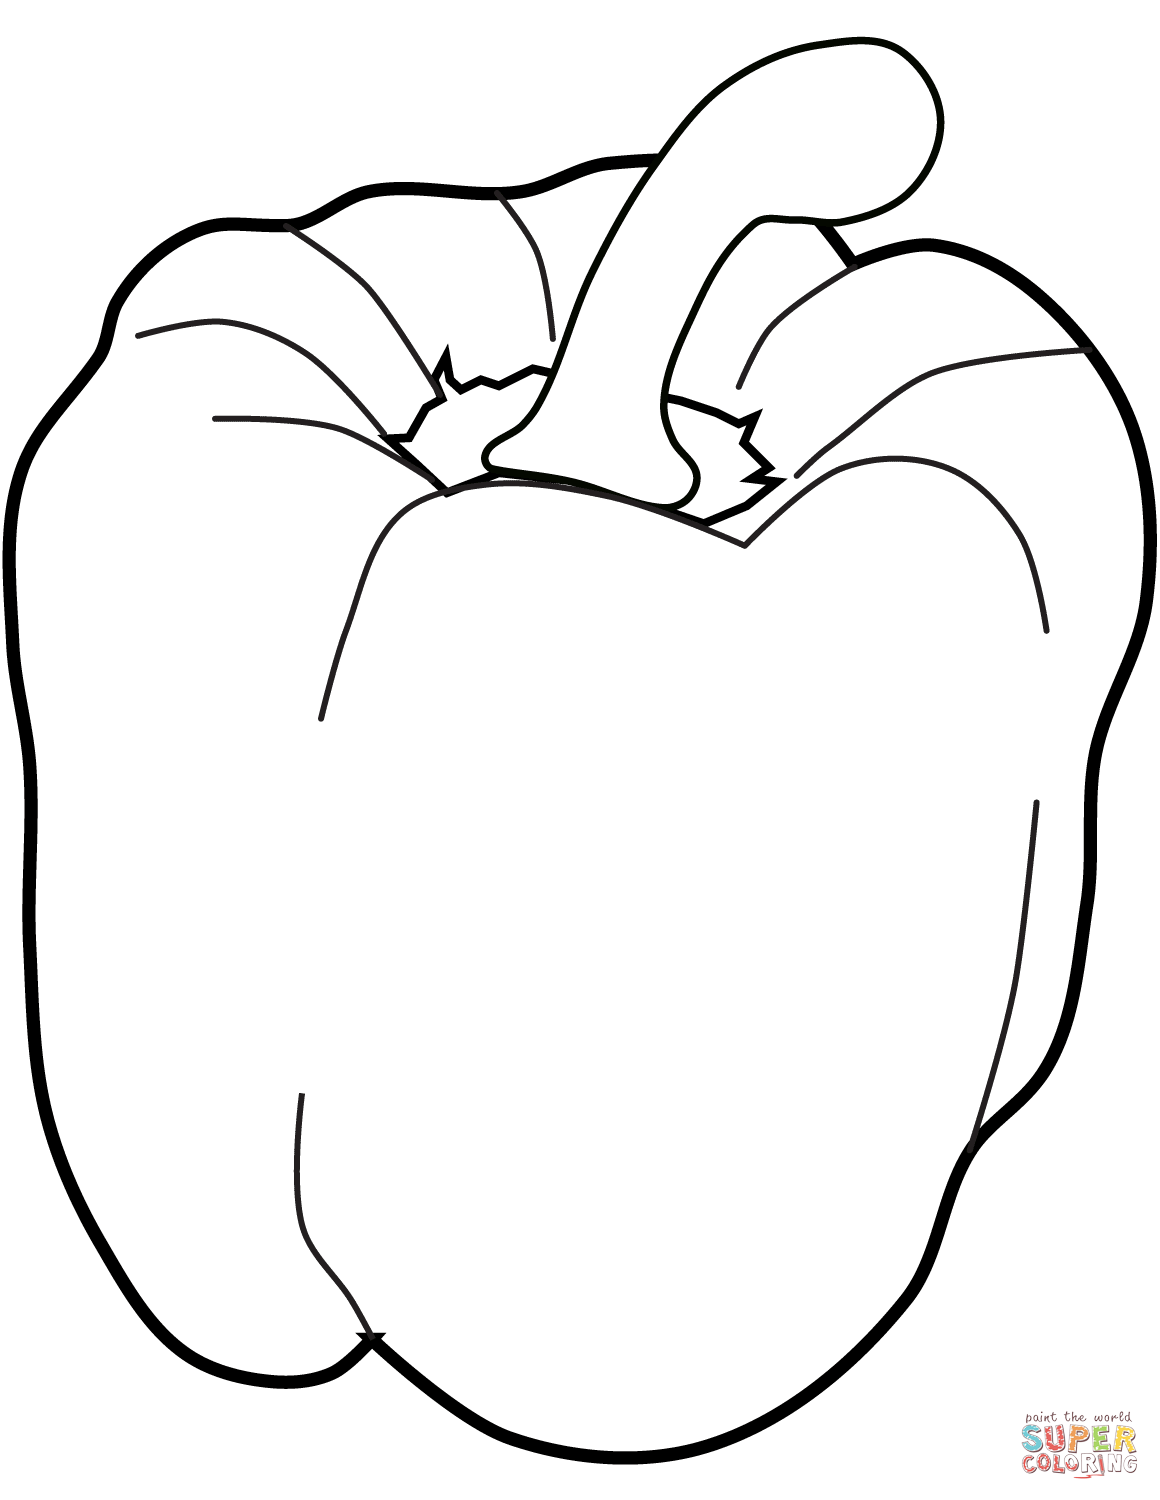 Image Result For Bell Pepper Outline Drawing